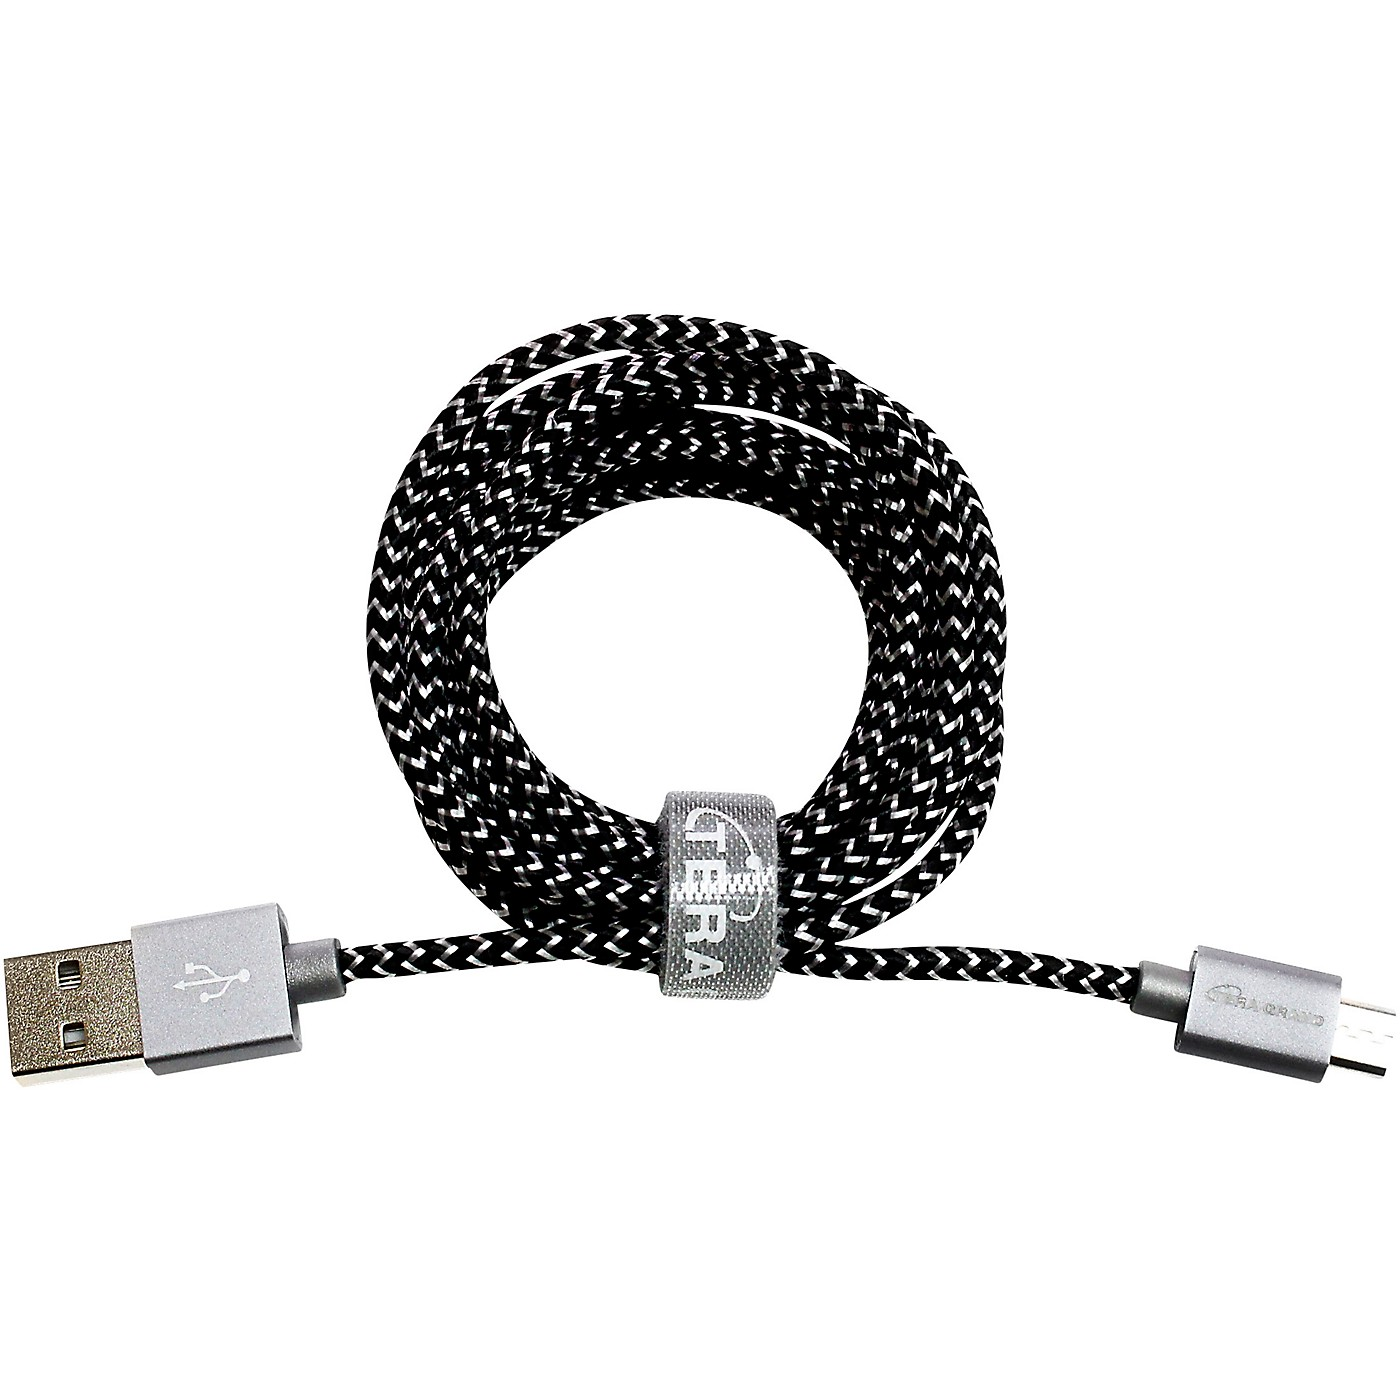 Tera Grand USB 2.0 C to A Braided Cable, 6' Black/White thumbnail